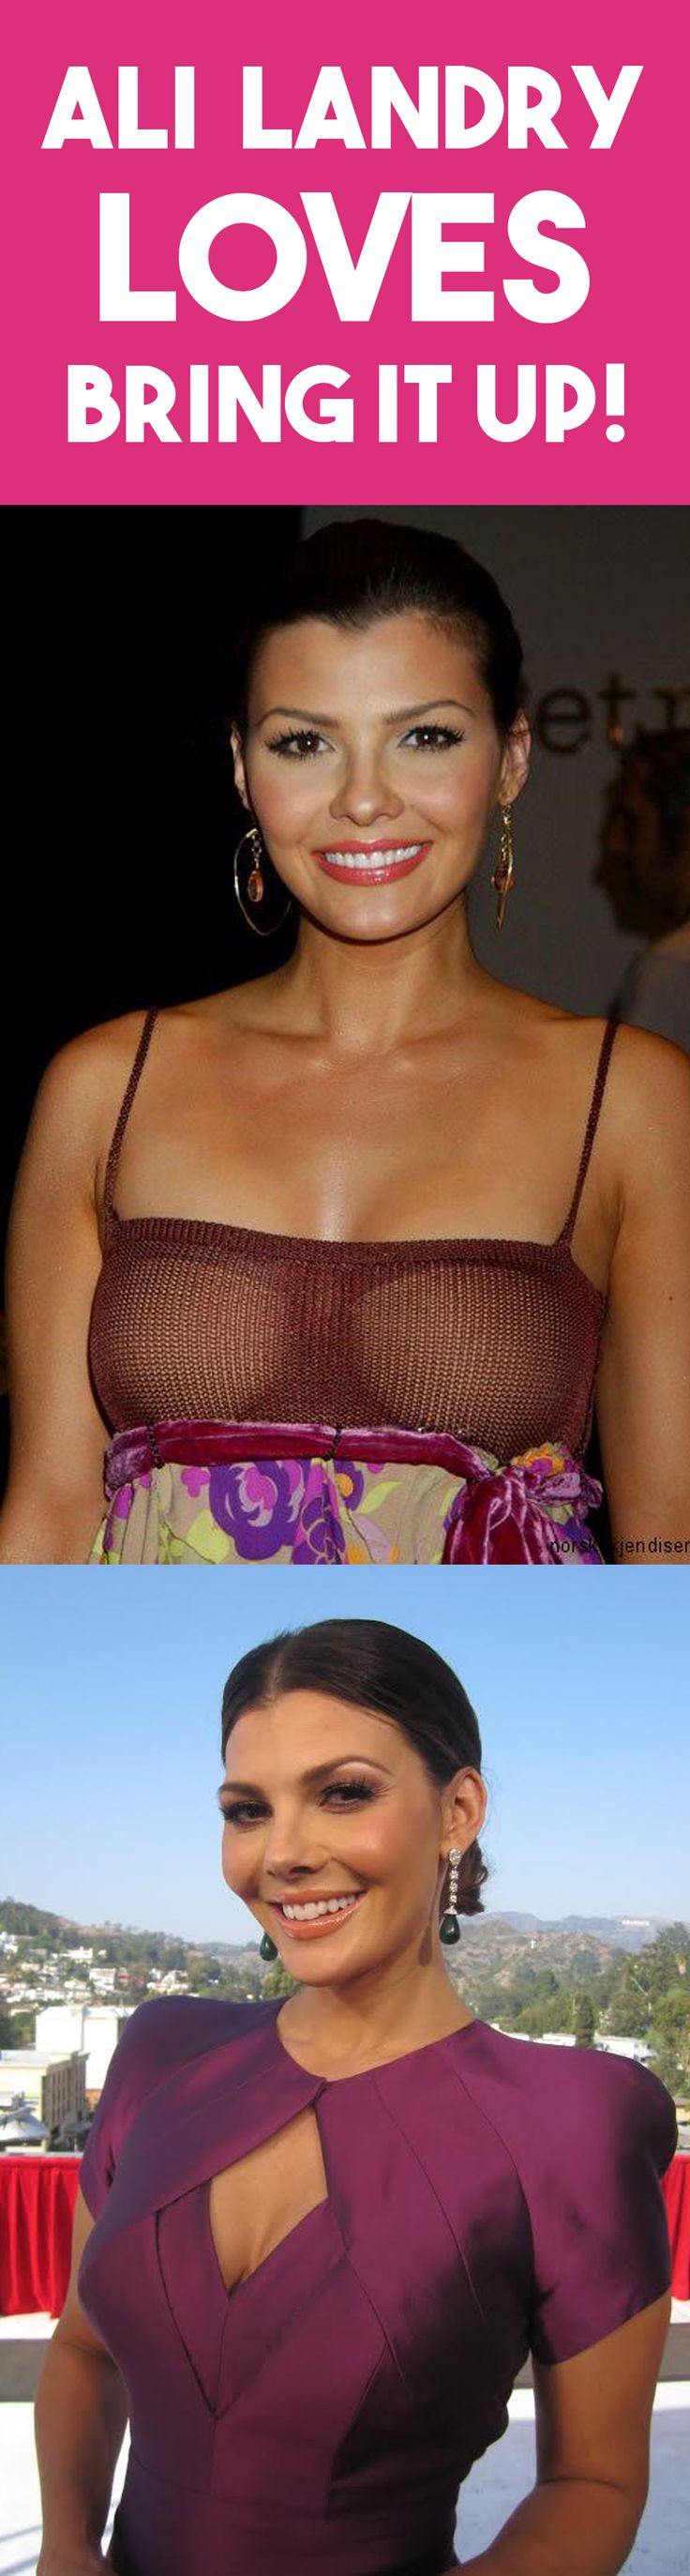 Even Ali Landry loves our breast shapers! Here she is wearing our products at a fancy evening event. They provide ultimate hold, and work with backless, strapless and spaghetti straps! With summer here, you can show off your curves in your most scandalous outfits. Celebrity approved!  #bras #stickybra #stickonbra #pasties #breastlifts #breastshapers #bringitup #shop #summer #summerbody #curvywomen #curves #sexy #alilandry #celebrity #backlesstops #strapless